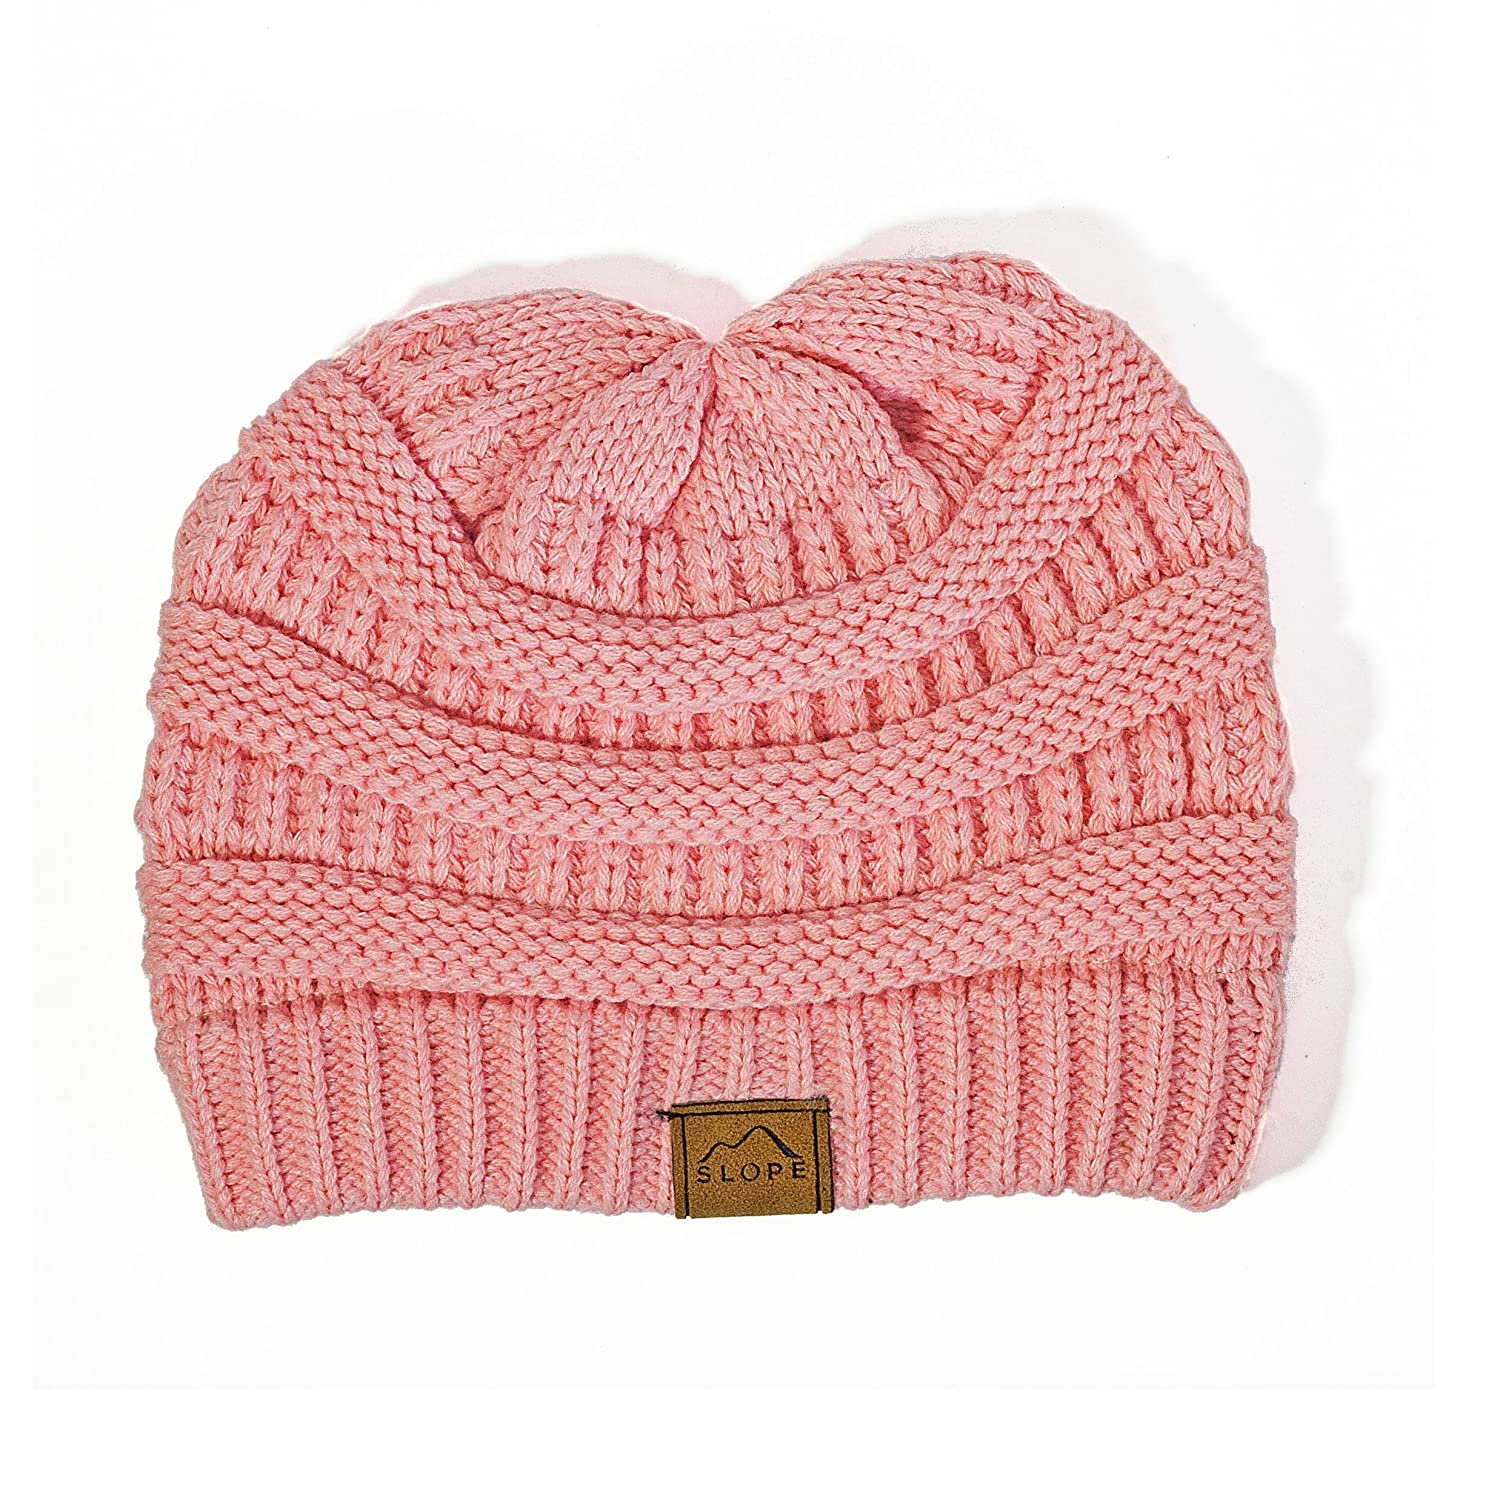 Slope Slouchy Beanie Warm Chunky Soft Stretch Cable Knit Slouchy Beanie Indi Pink